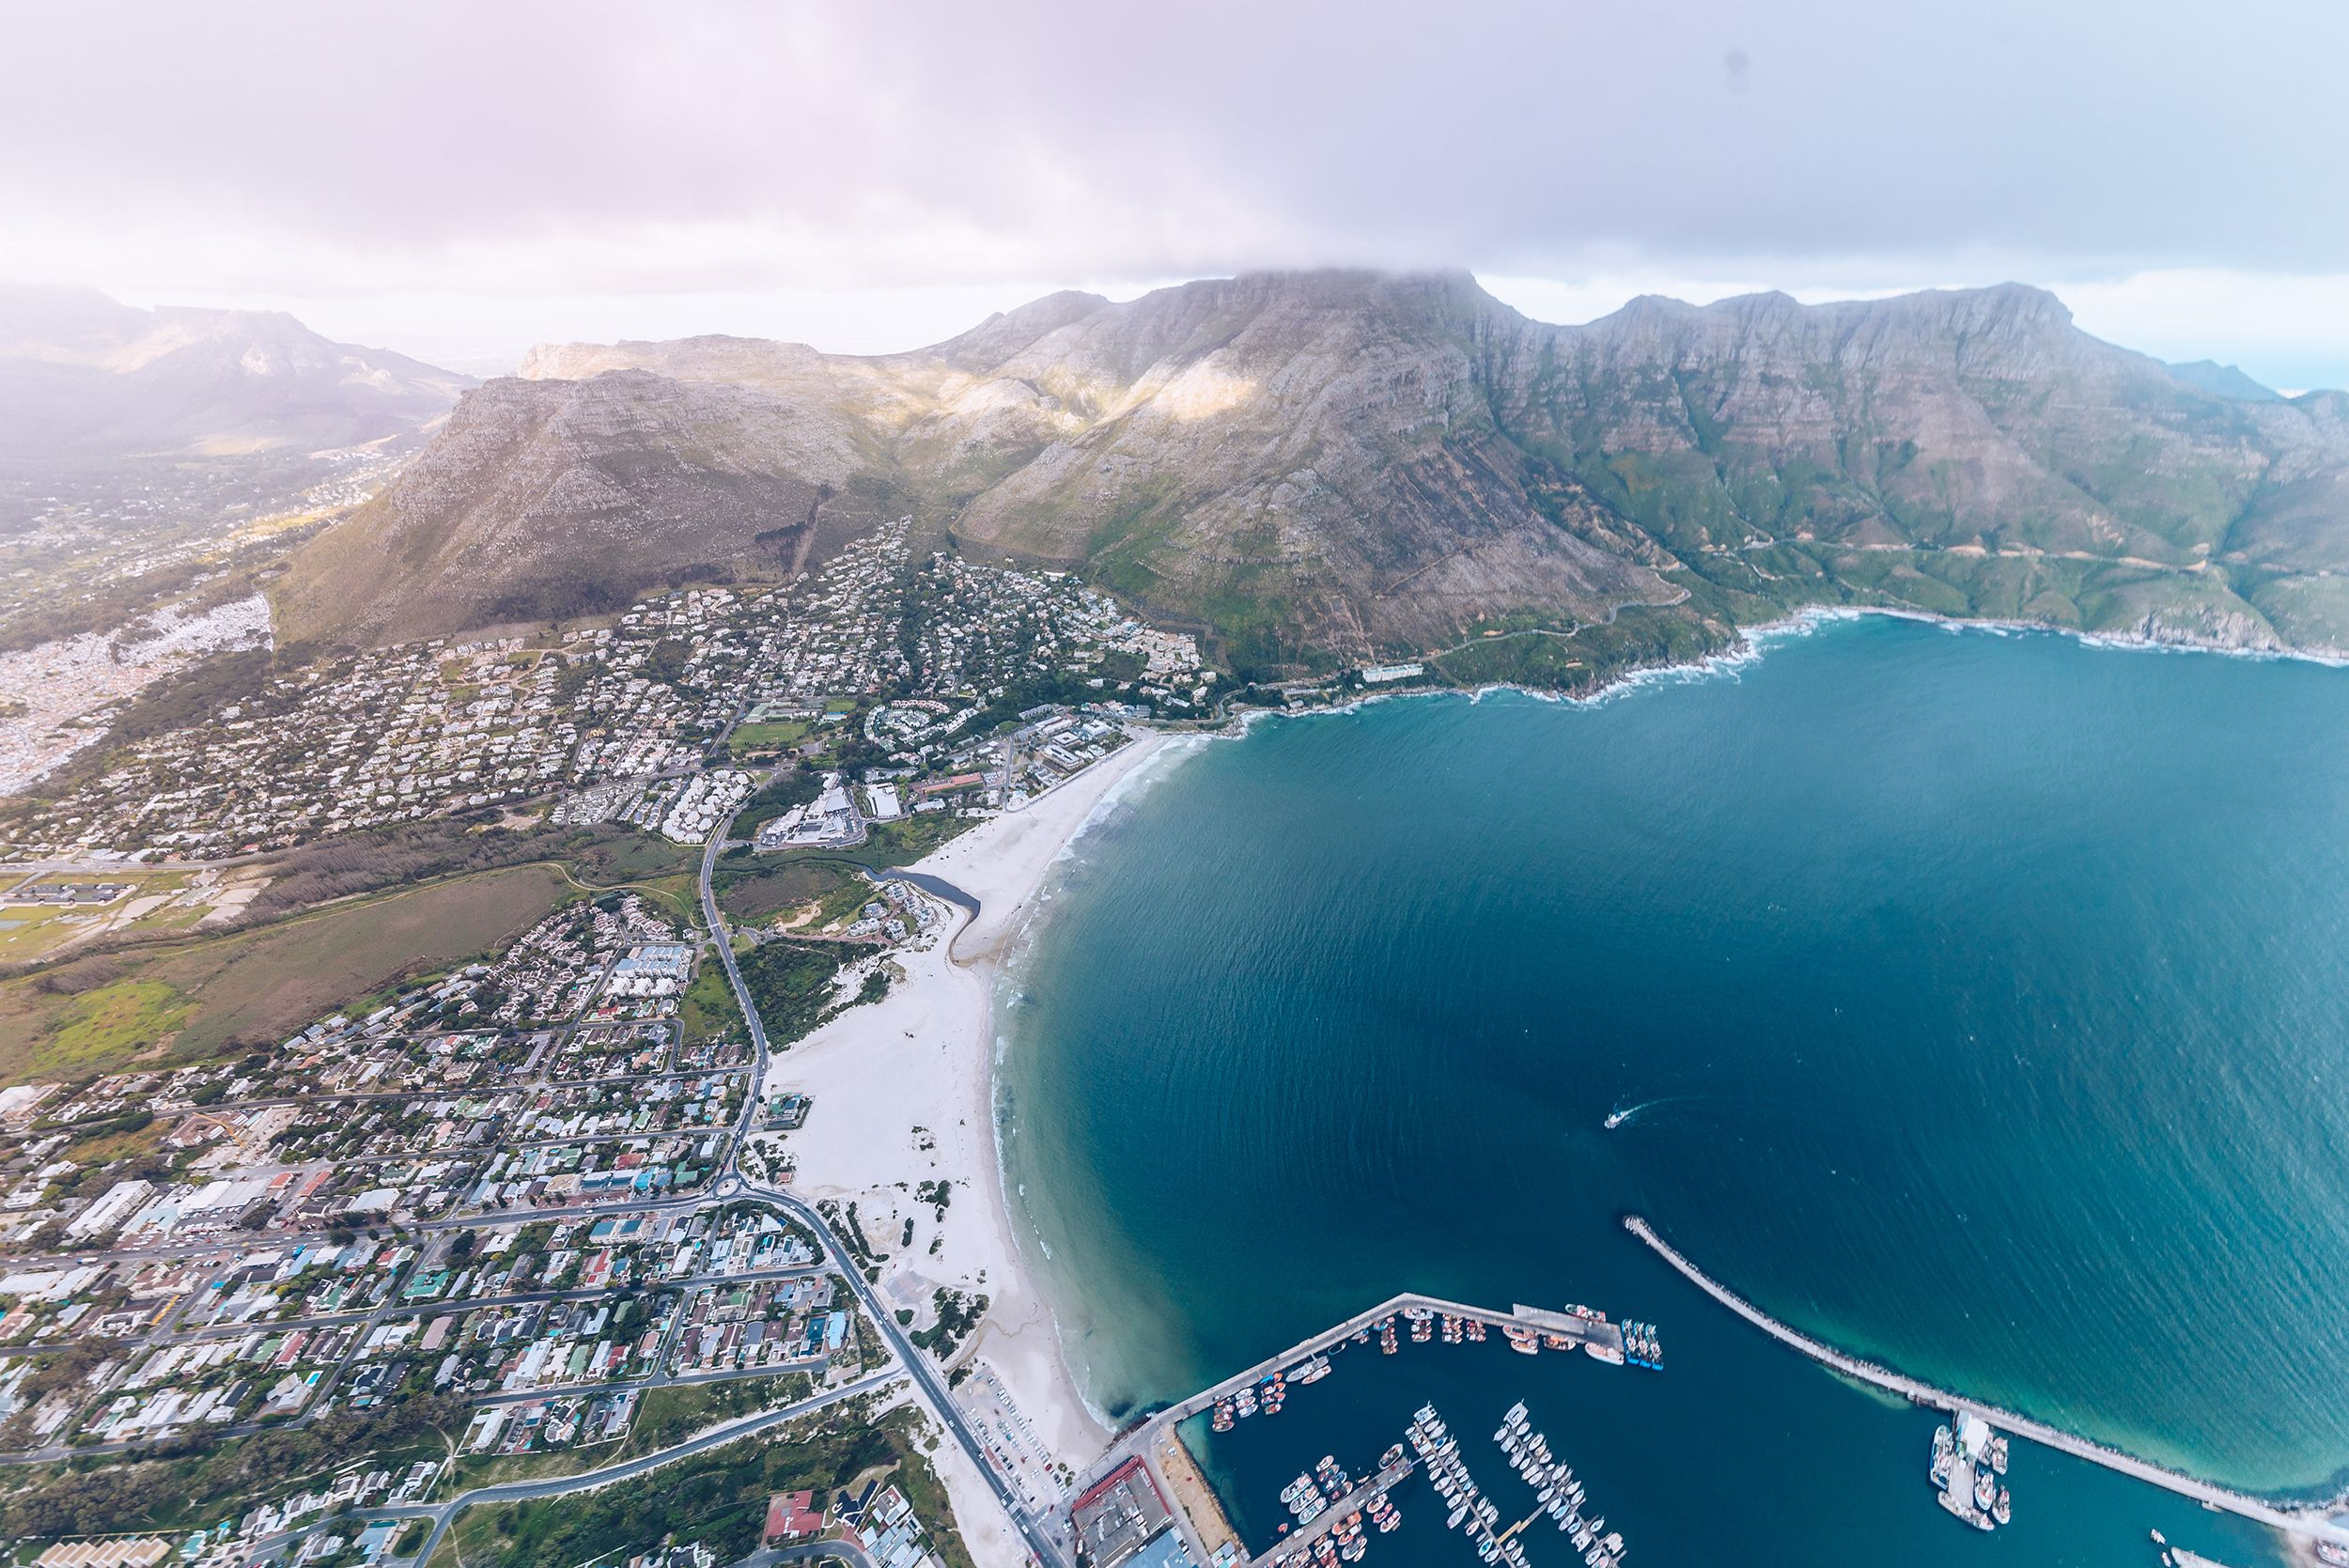 Things to do in Cape Town: Helicopter ride